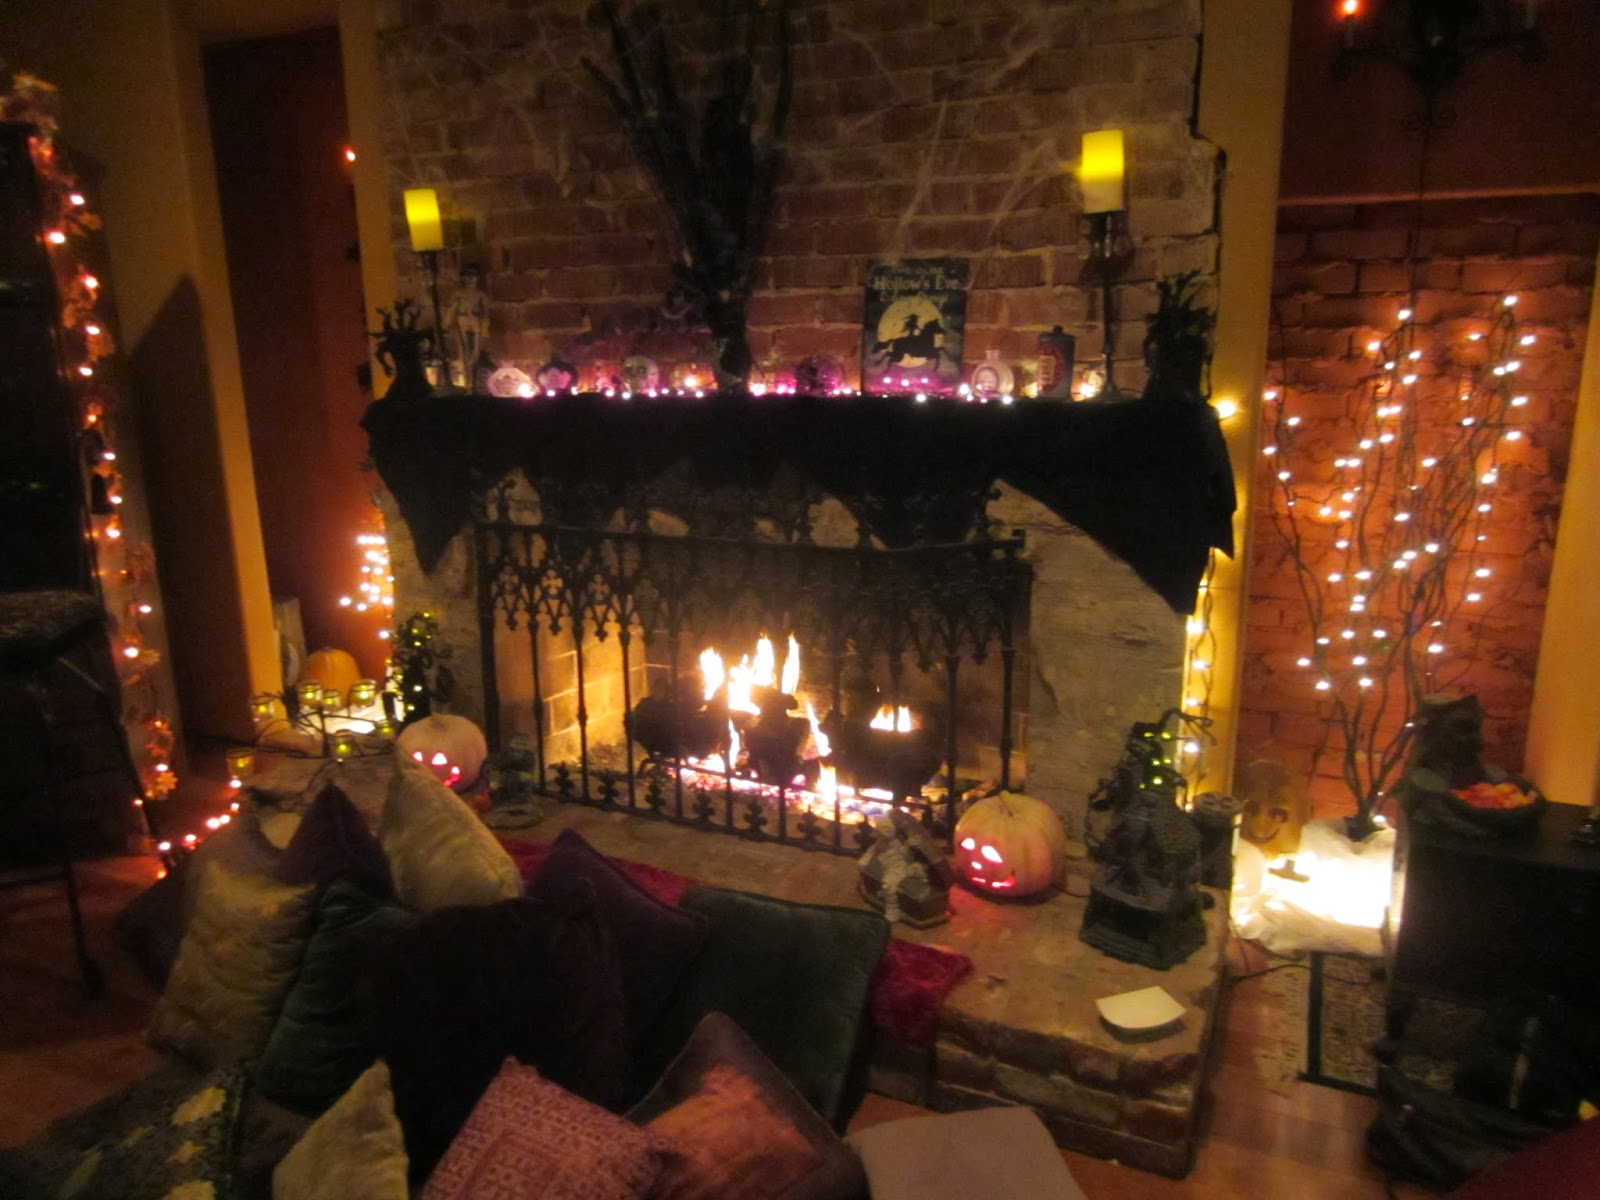 How to decorate your room for halloween inspiration home decor - Deco halloween diy ...